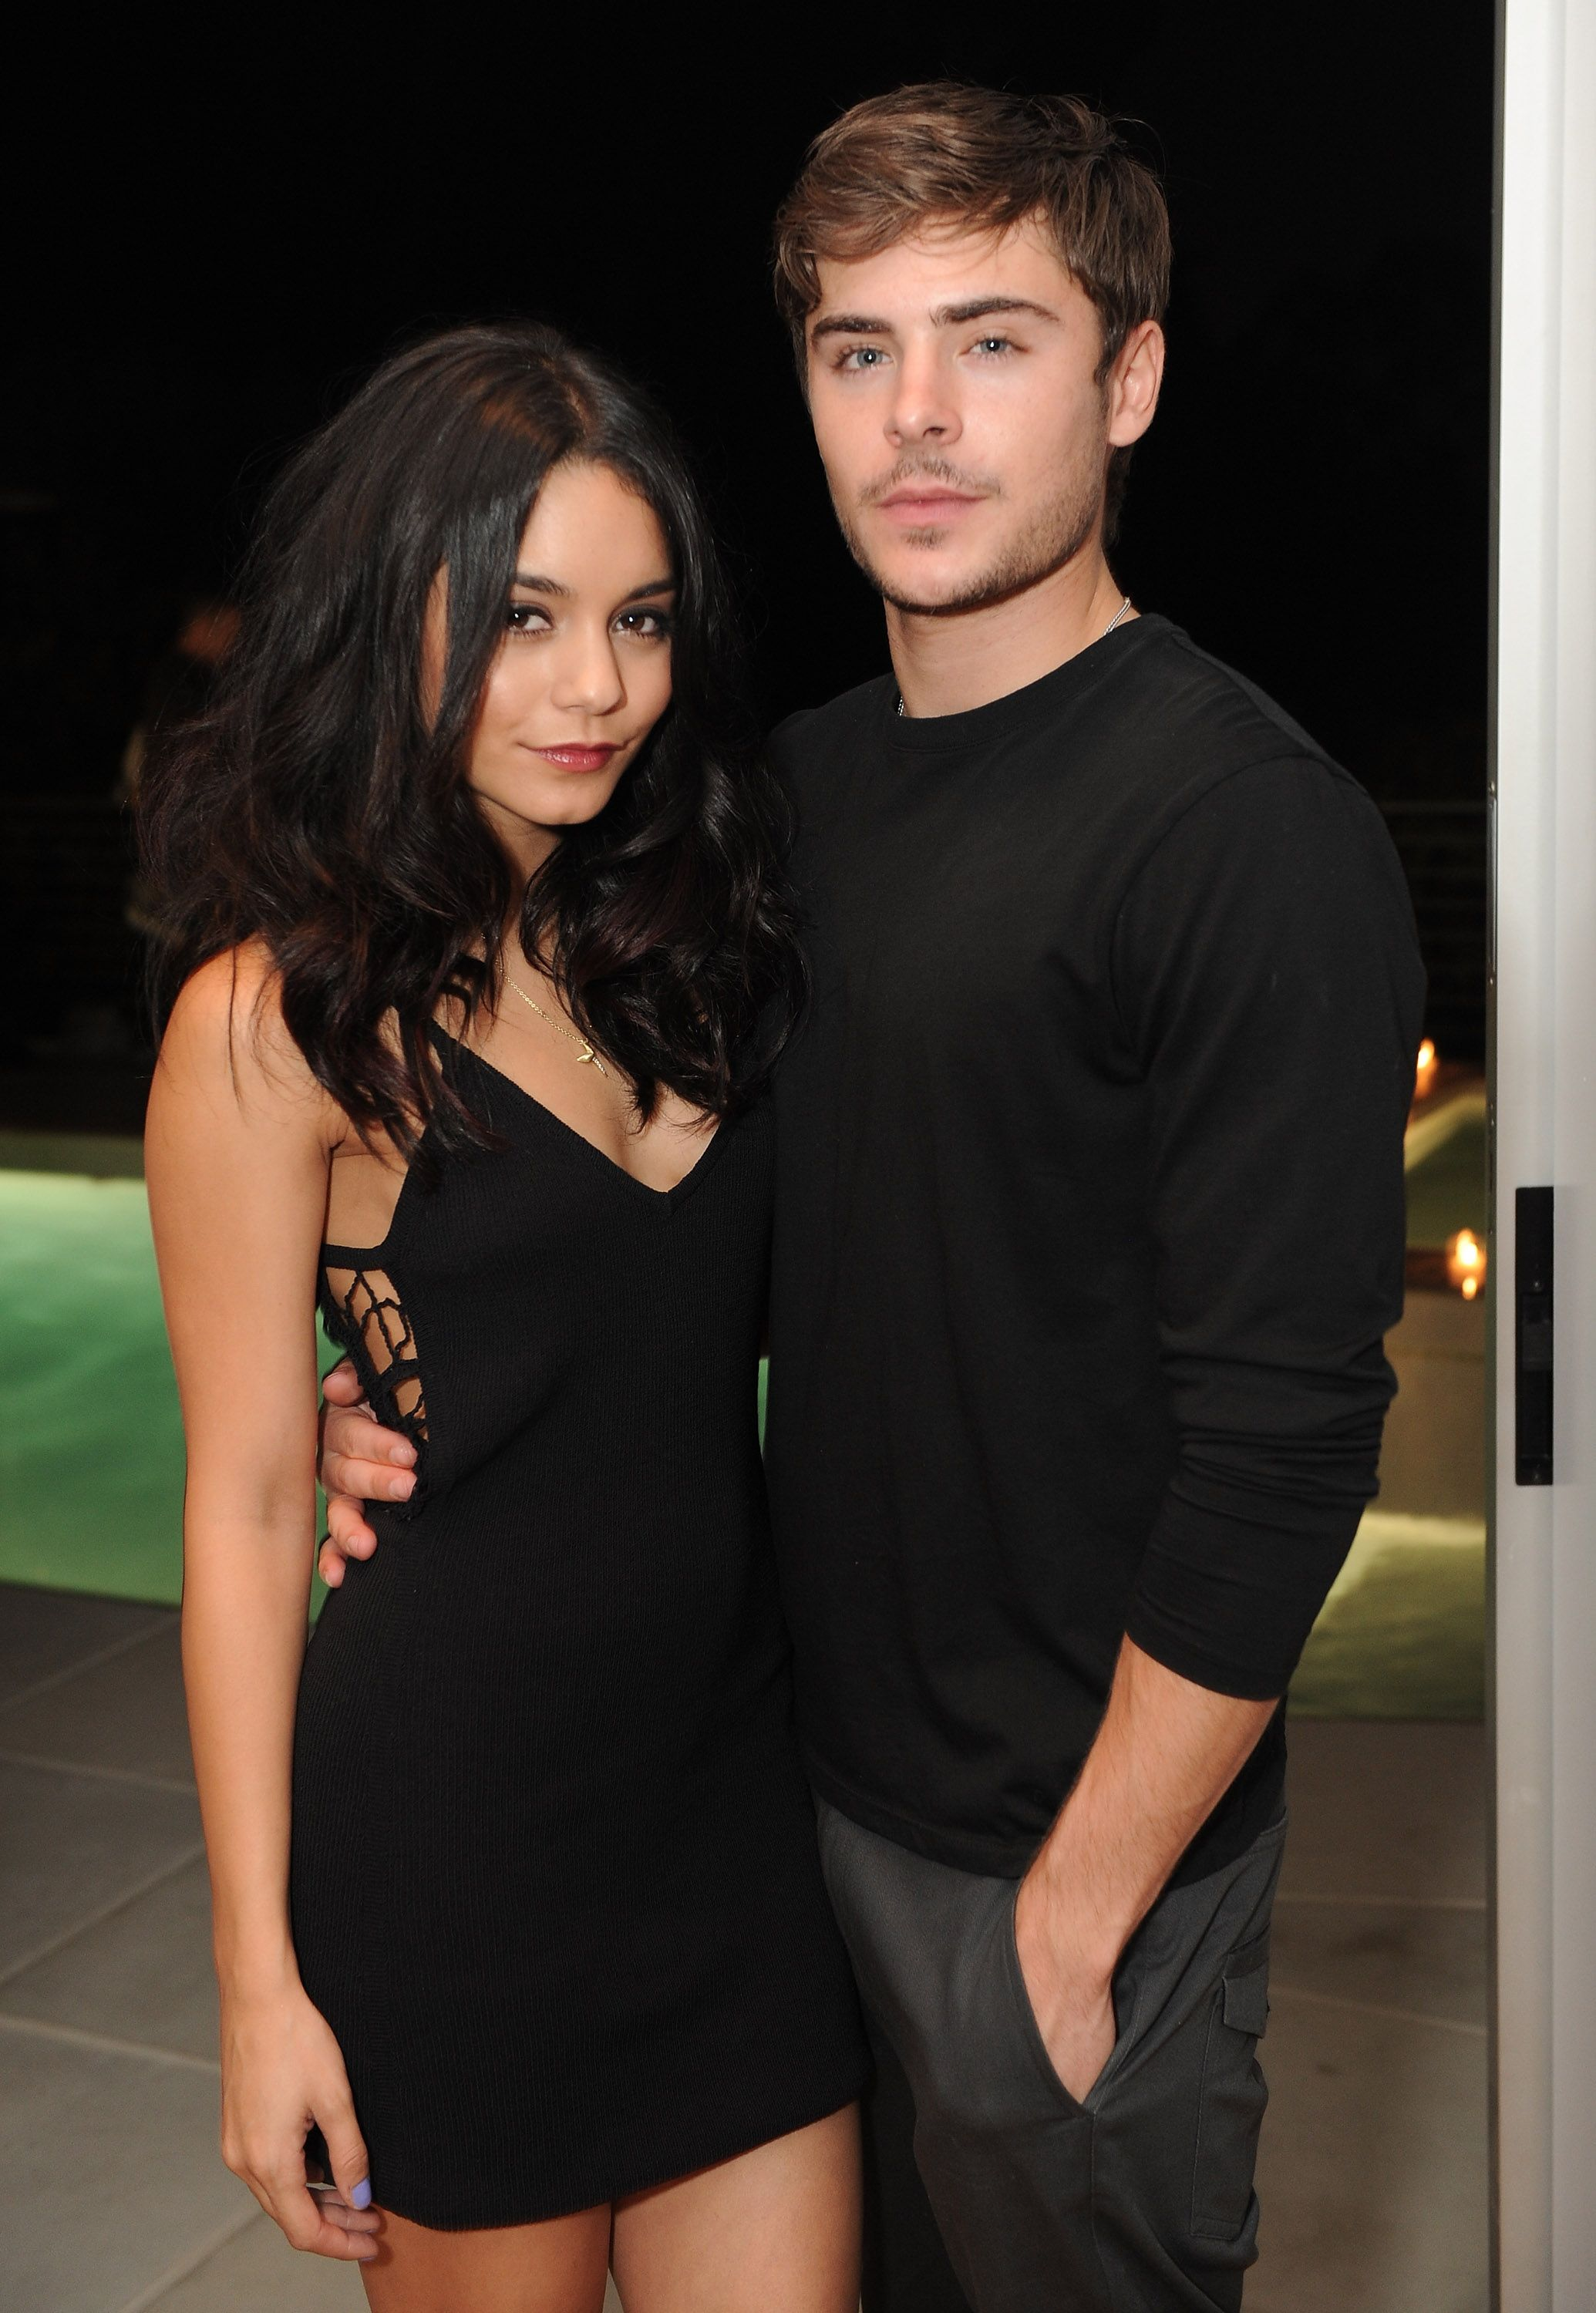 Whos zac efron dating now 2018